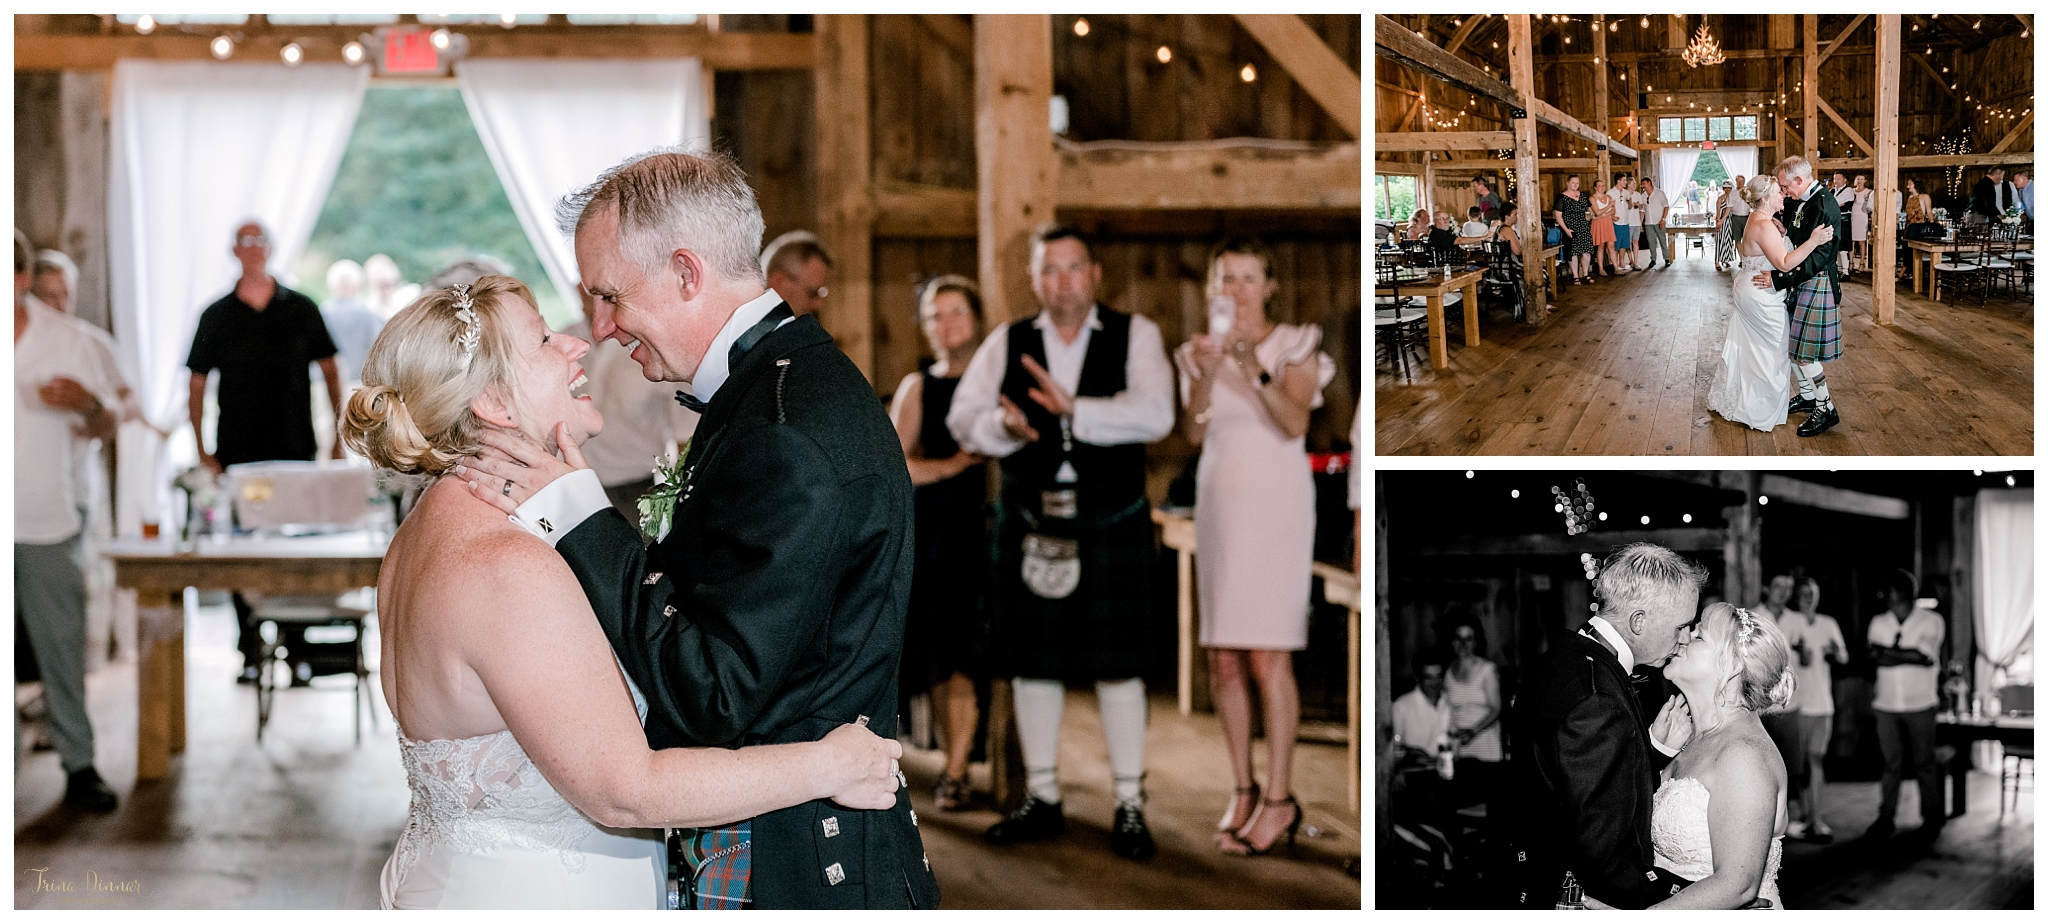 Angela and Billy's First Dance at The Hitching Post